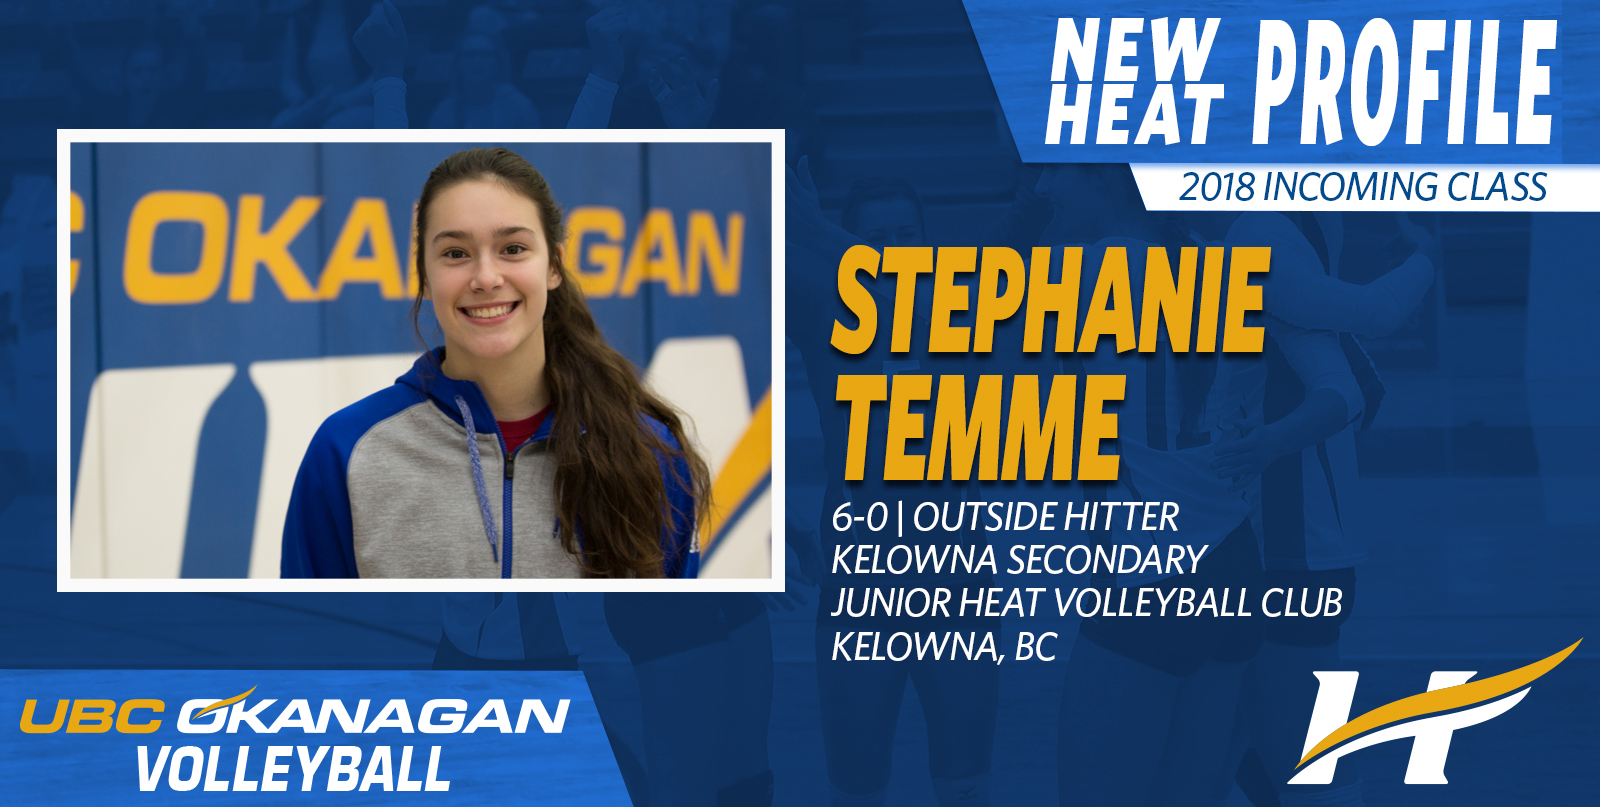 Stephanie Temme, a 6-foot outside hitter, will go from the Owls to the Heat